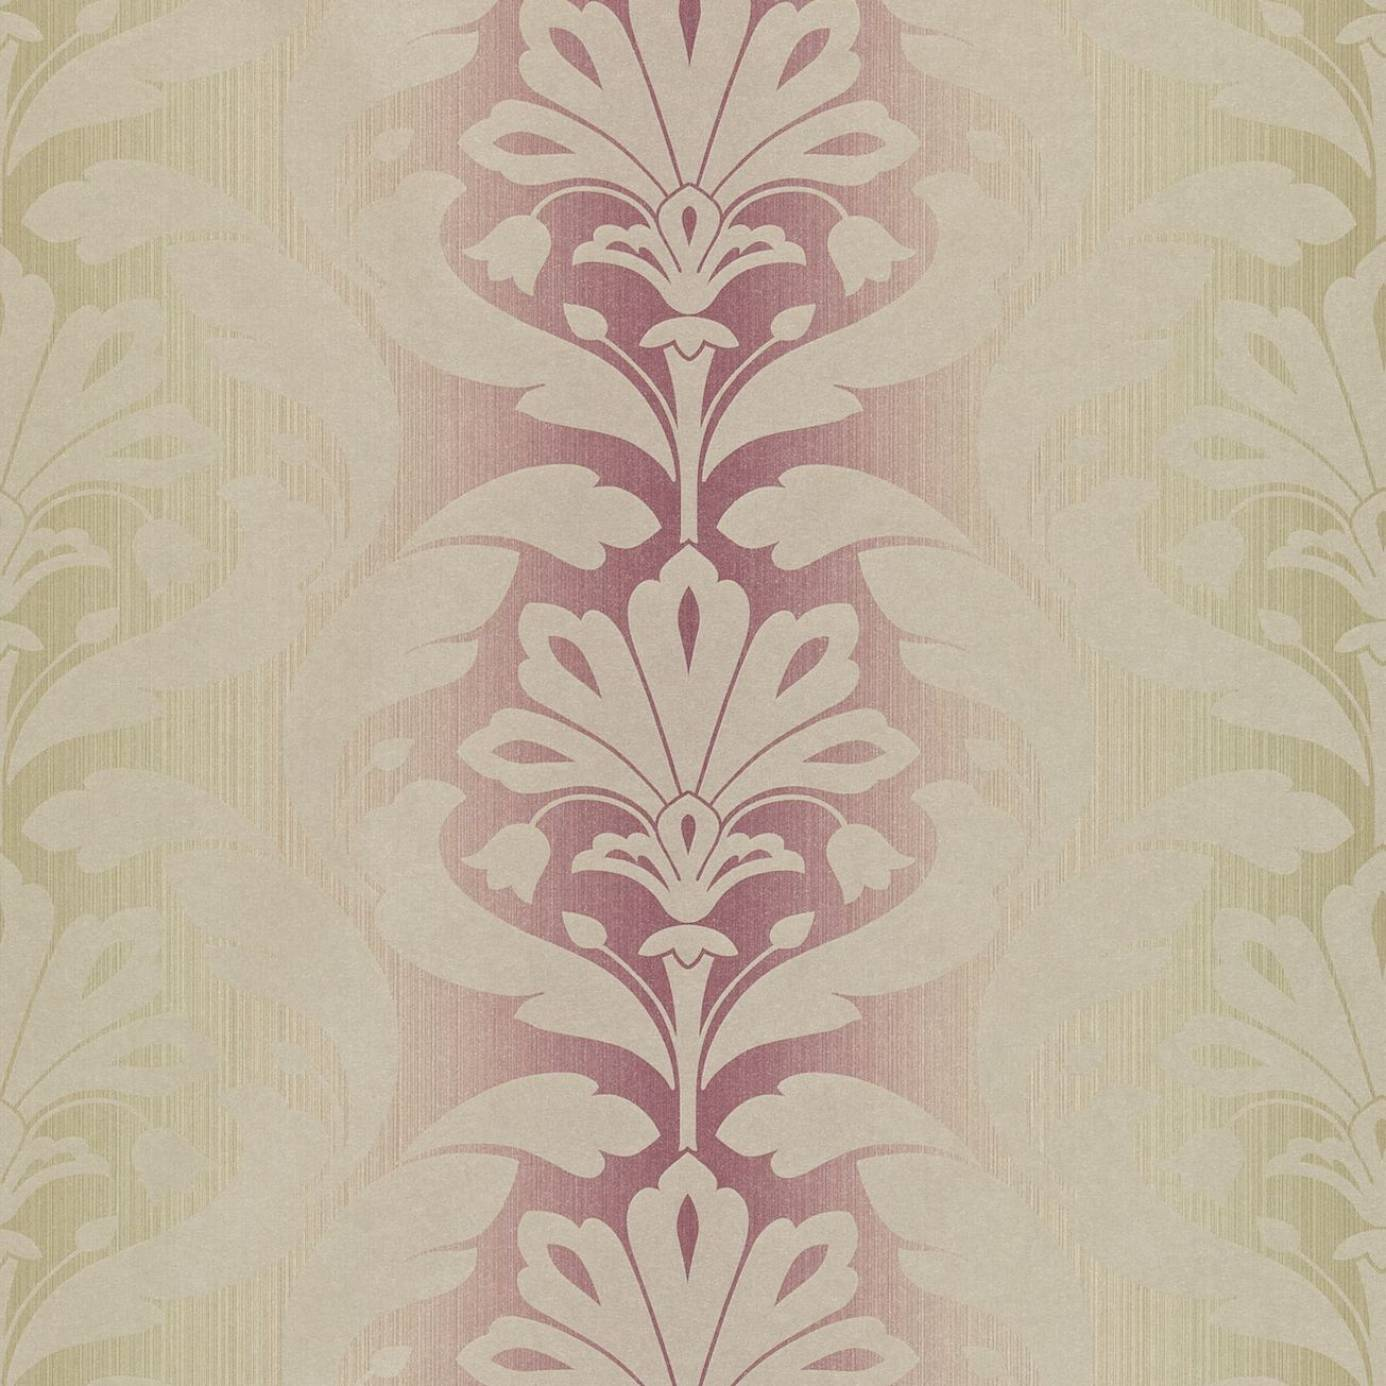 Sanderson Options 10 Wallpapers Delaunay Damask Wallpaper - Plum -  DOPWDE102. Loading zoom - Delaunay Damask Wallpaper - Plum (DOPWDE102) - Sanderson Options